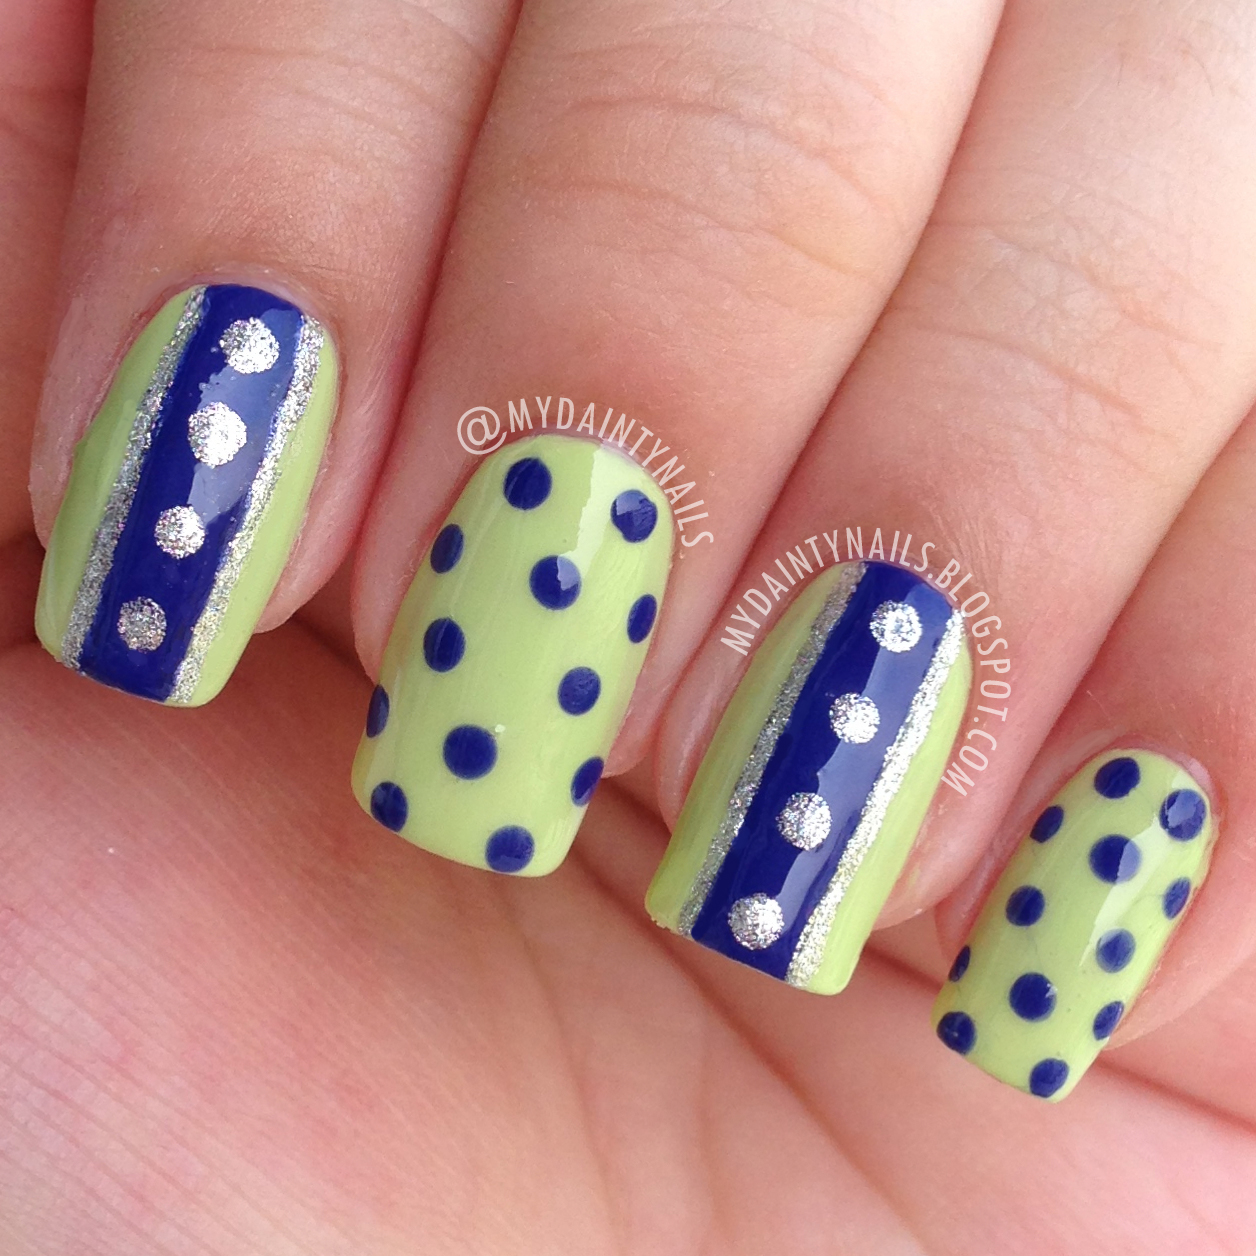 My Dainty Nails: Green & Blue Dots & Stripes